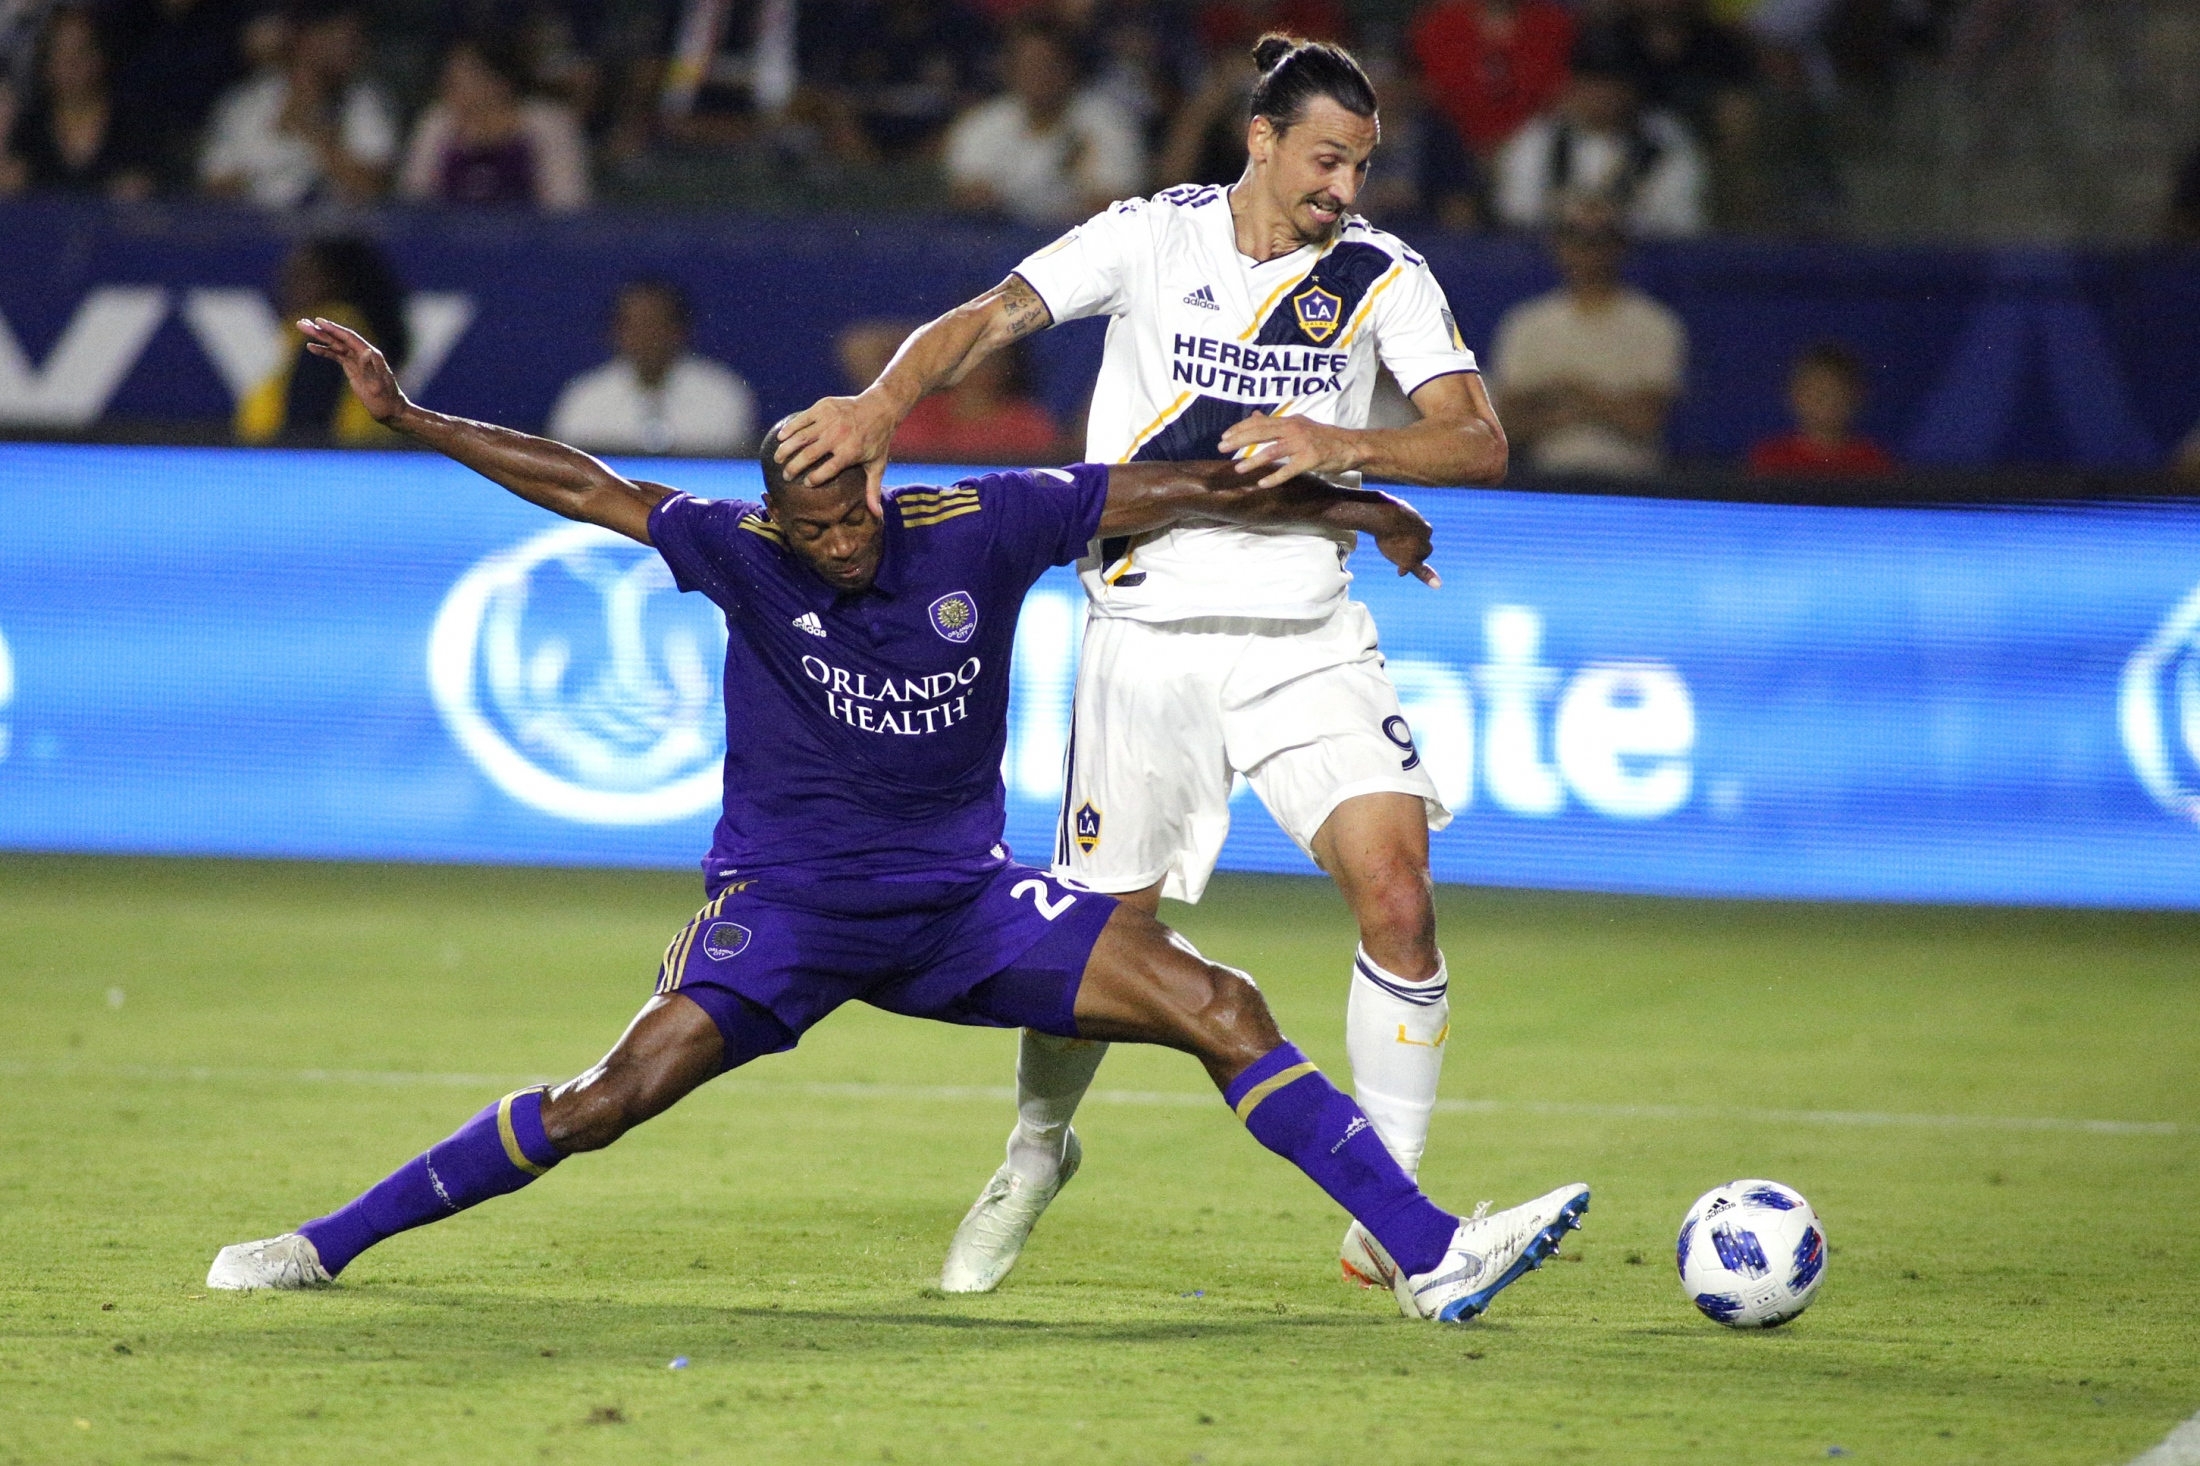 Zlatan Ibrahimovic #9 of the Los Angeles Galaxy and Chris Schuler #28 of the Orlando City SC fight for control of the ball at StubHub Center on July 29, 2018 in Carson, California. Katharine Lotze/Getty Images